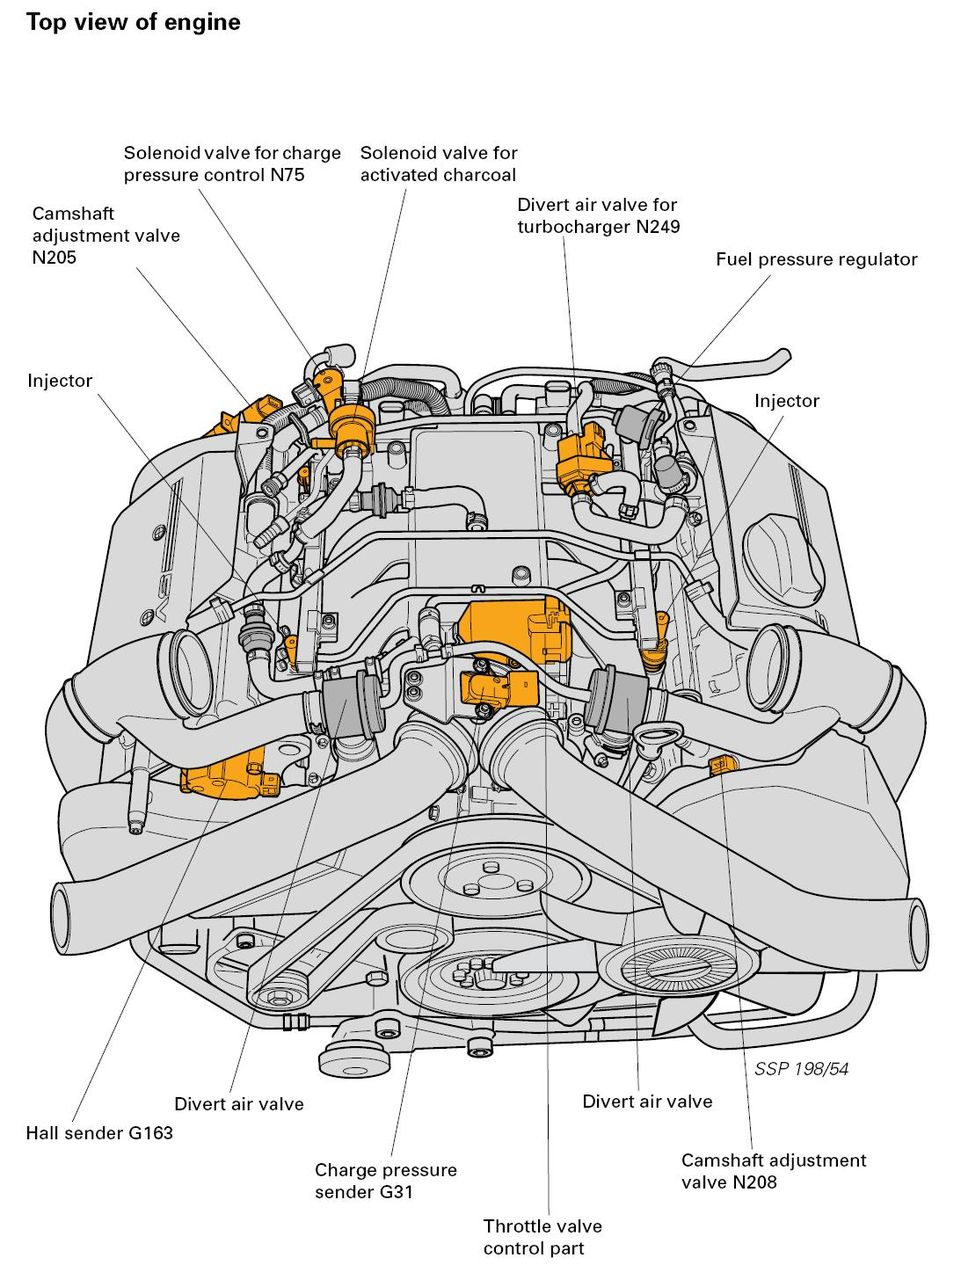 Audi 27t Engine Vacuum Diagram Trusted Wiring 2001 All Road Pics Or A Cut Away Of Some Sort A4